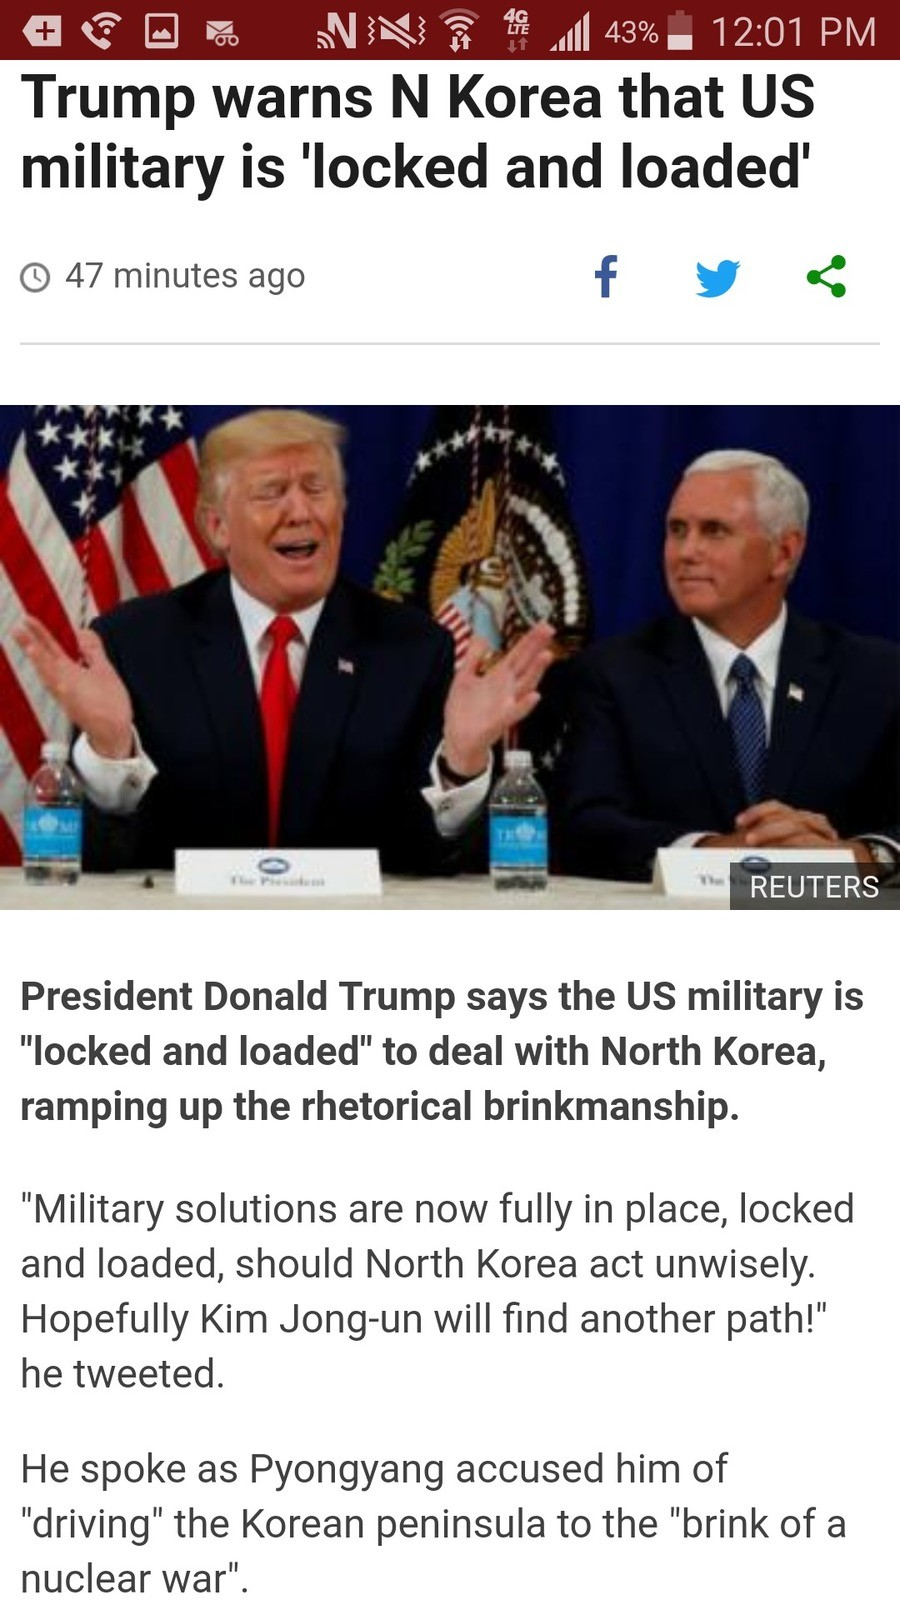 Oh snap. Also, Australia said they'd help us out if goes south. Admin, for the love of God just back down.. Trump warns N Korea that US military is 'locked and